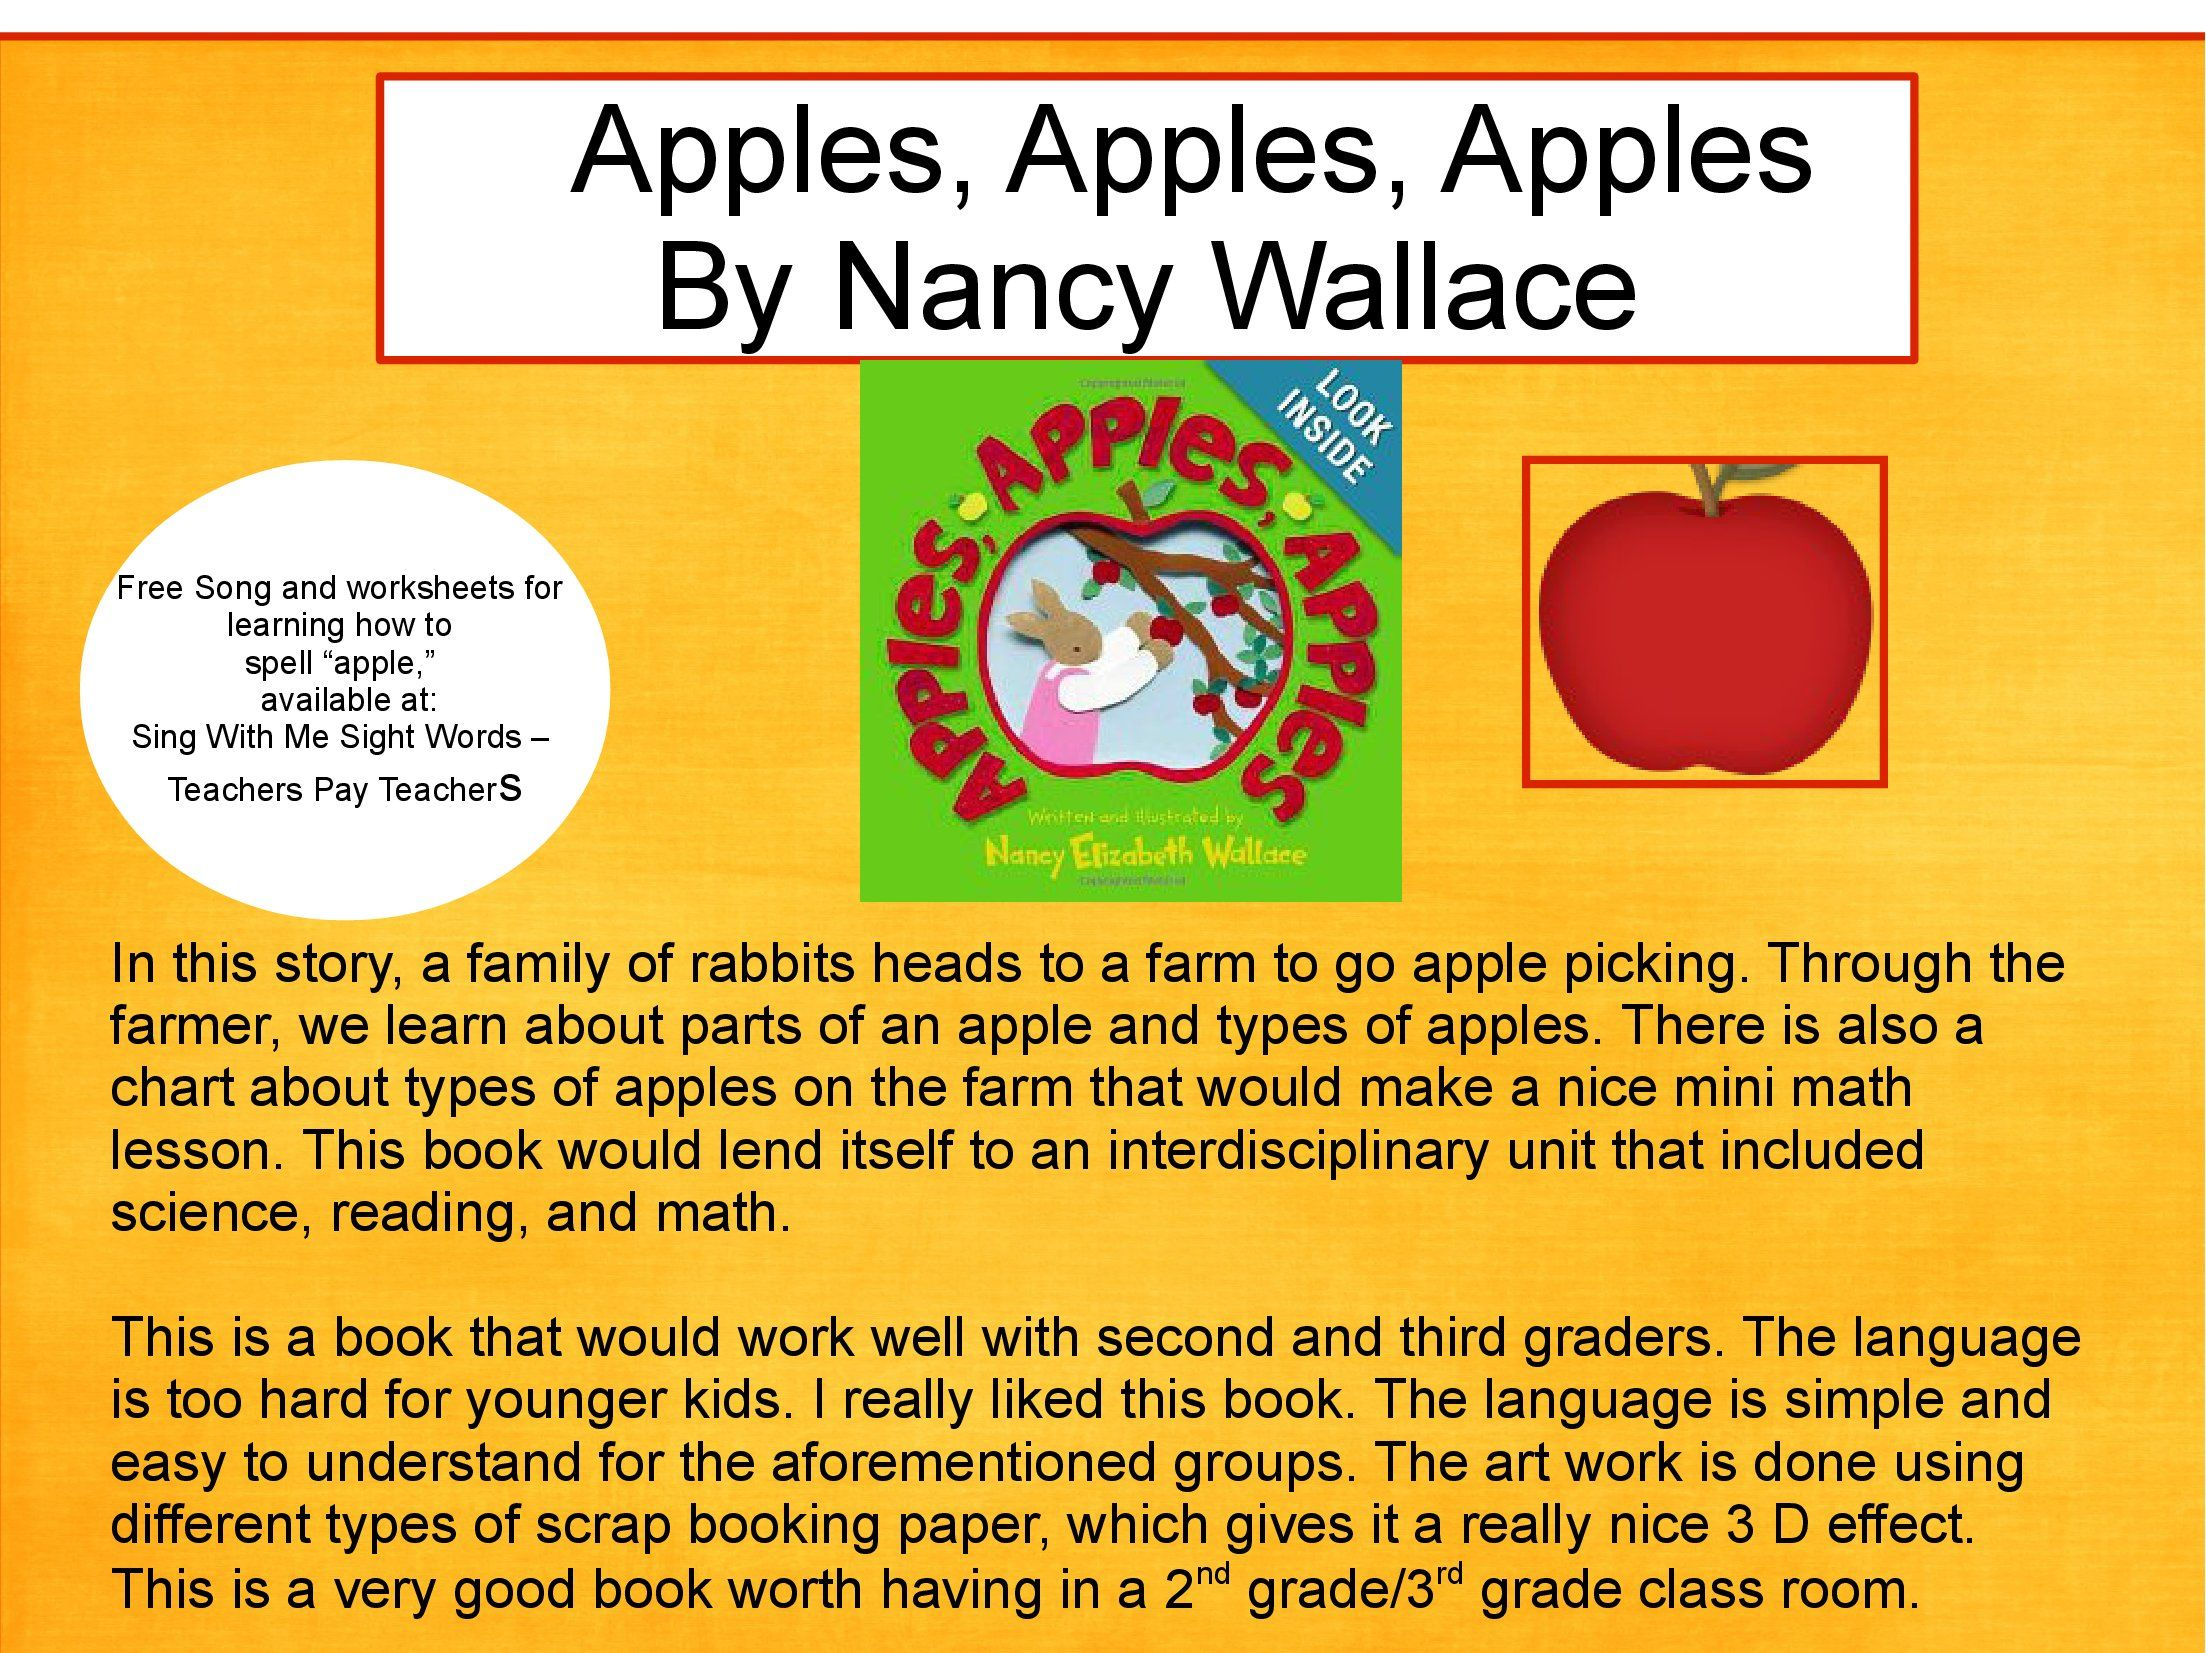 Book about apple picking for 2nd/3rd grade   Instructional planning [ 1653 x 2206 Pixel ]